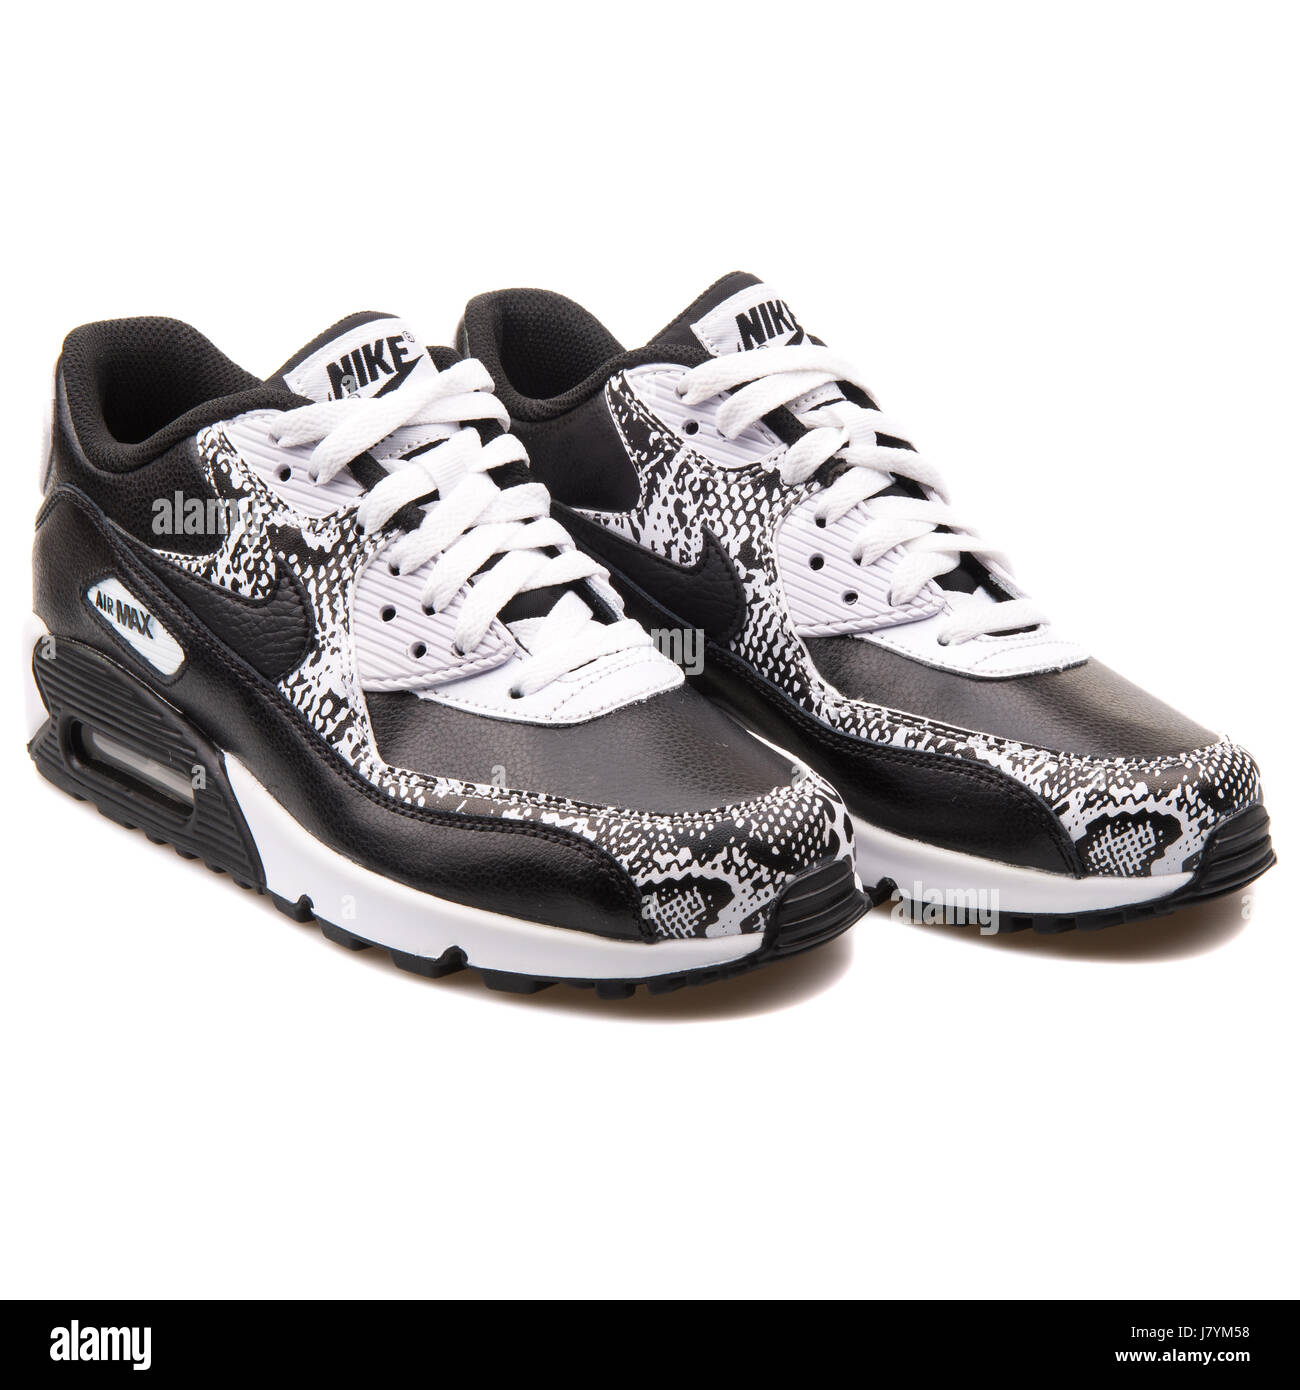 newest 7ec52 28e65 Nike Air Max 90 Premium LTR (GS) Youth Black and White Running Sneakers -  724871-001